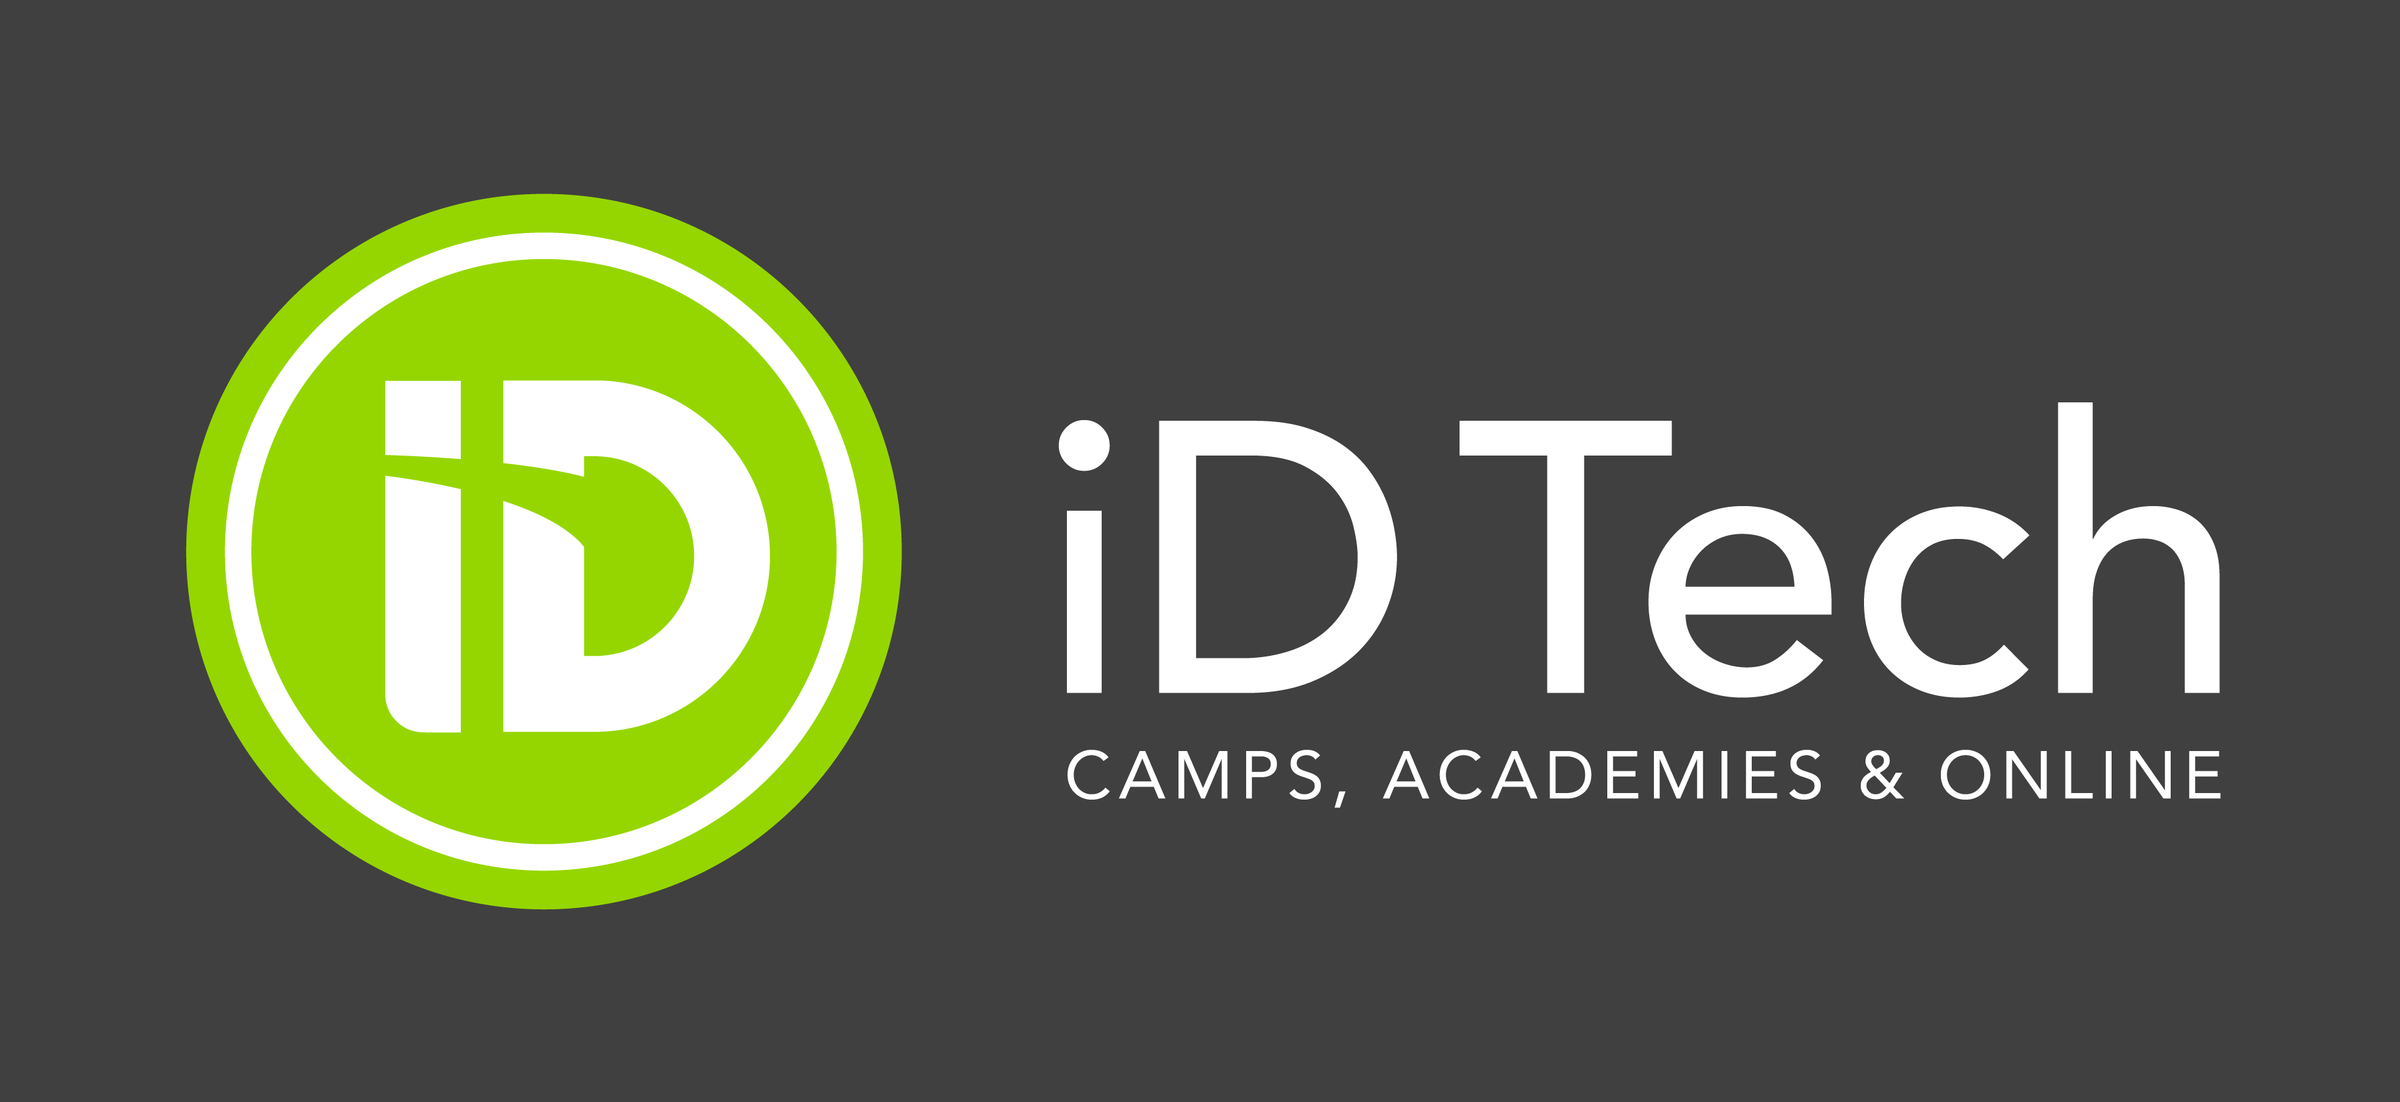 iD Tech Camps: #1 in STEM Education - Held at University of Maryland